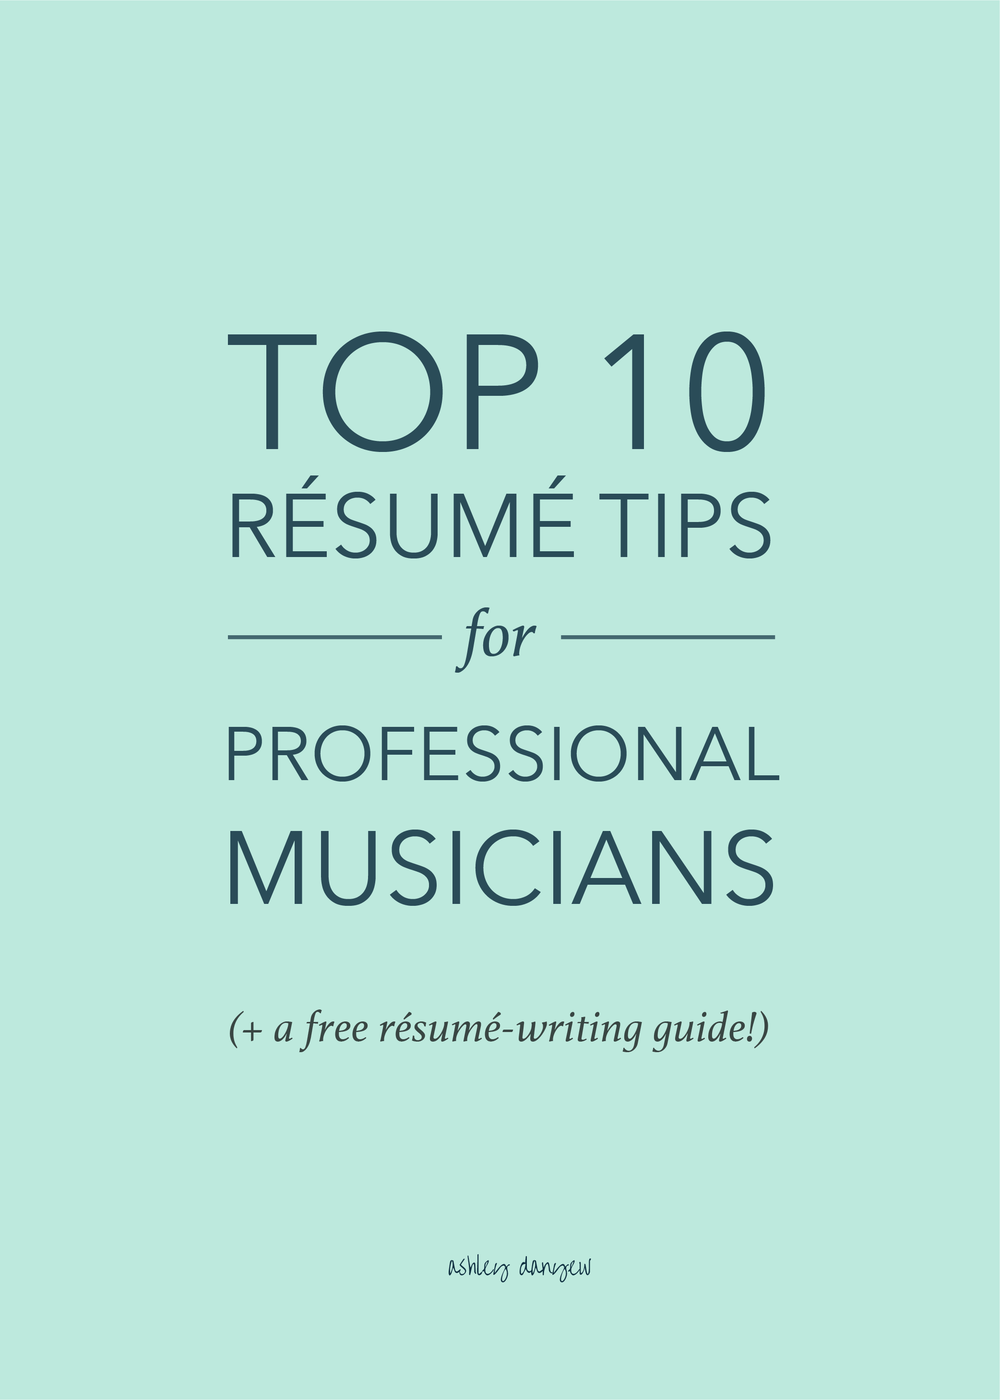 Top 10 Resume Tips for Professional Musicians-05.png